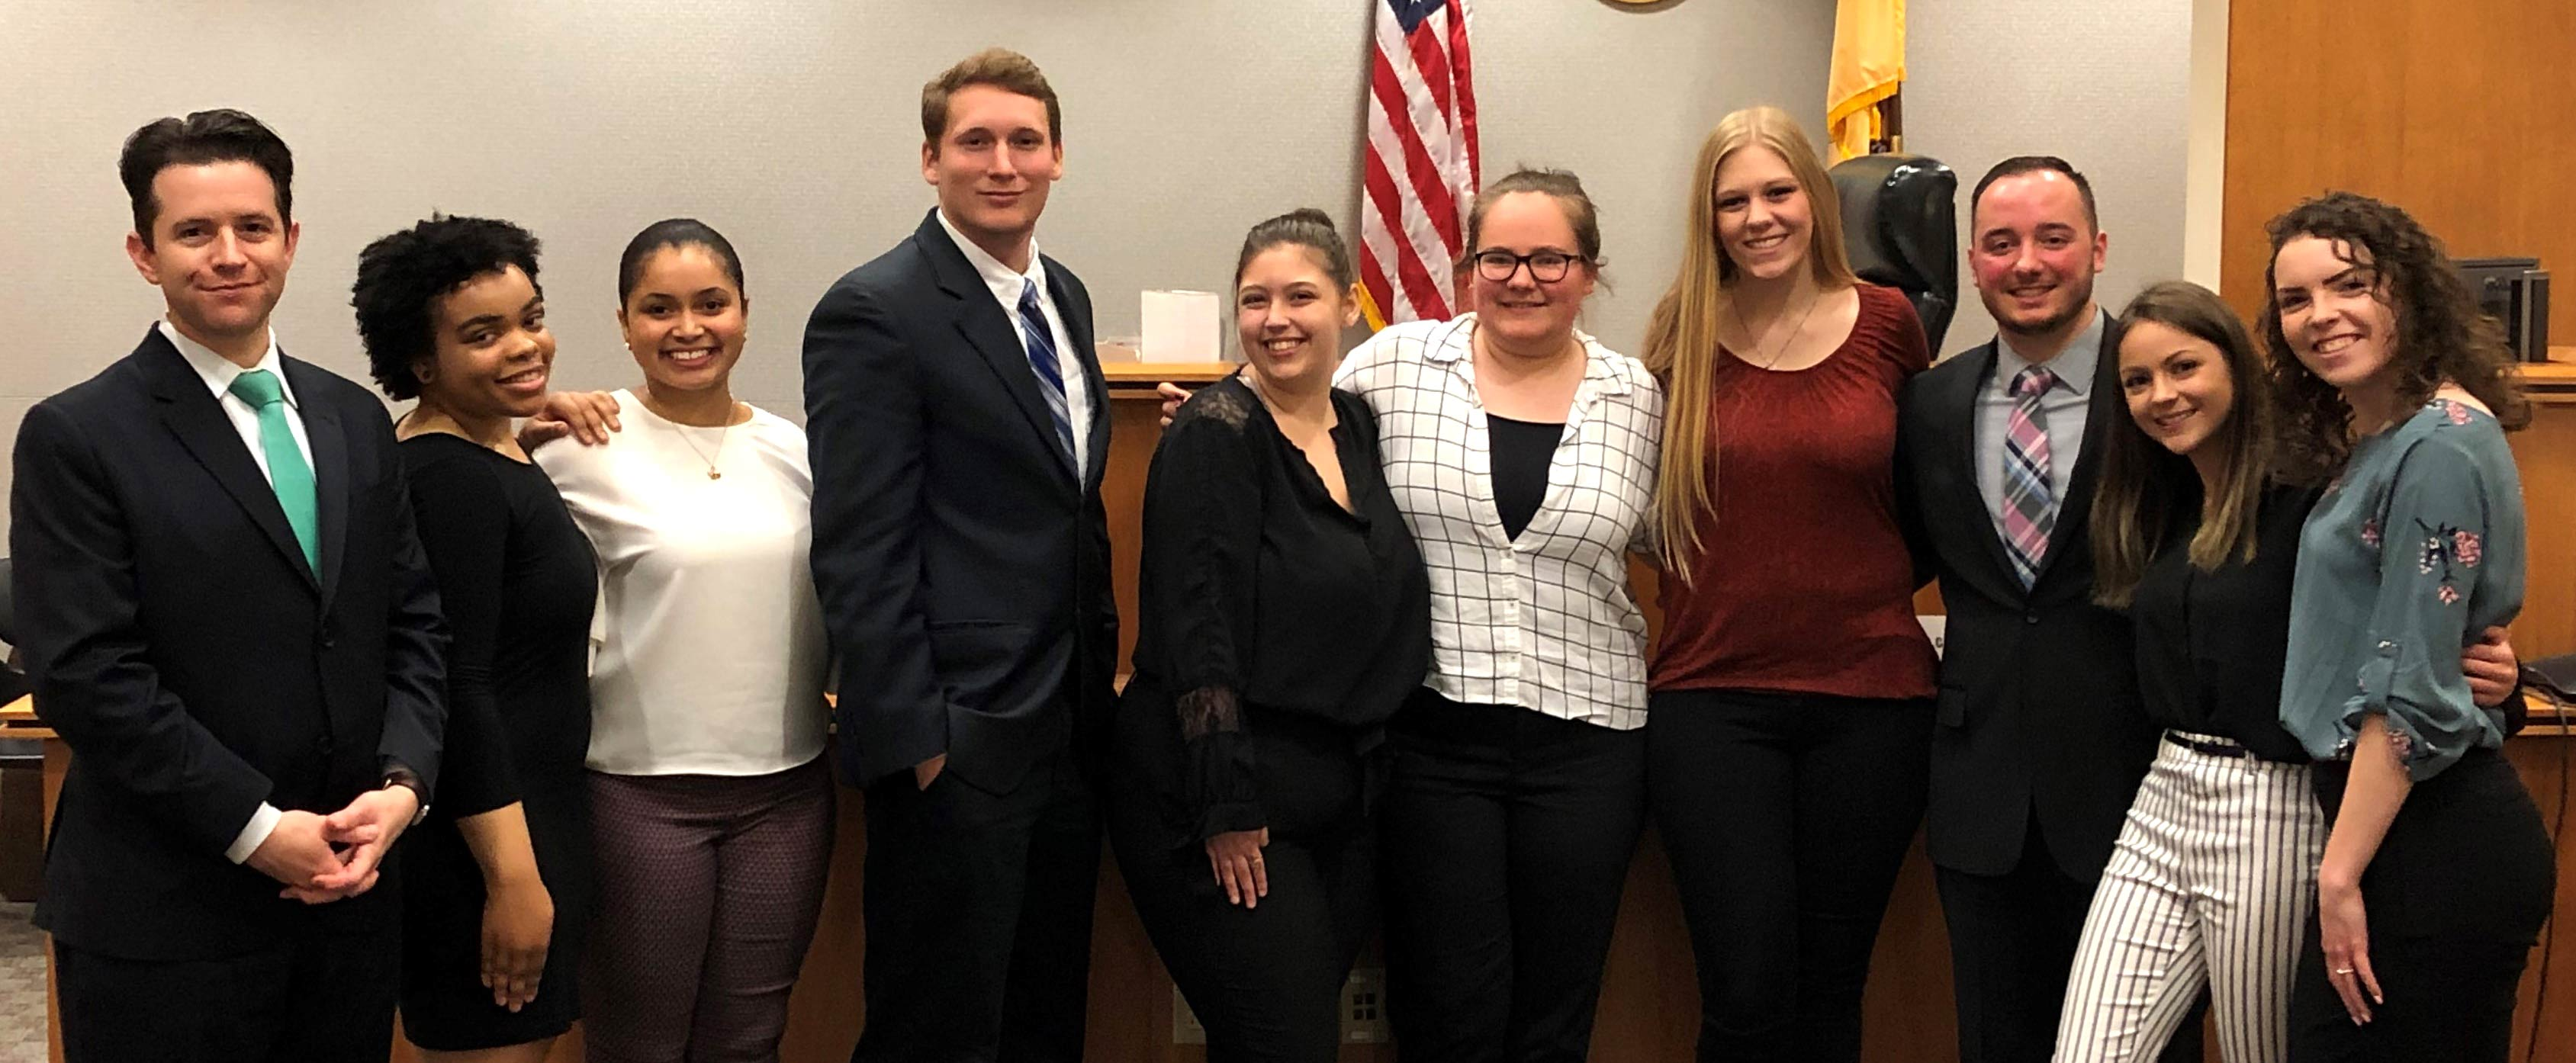 Trial Advocacy students and professor